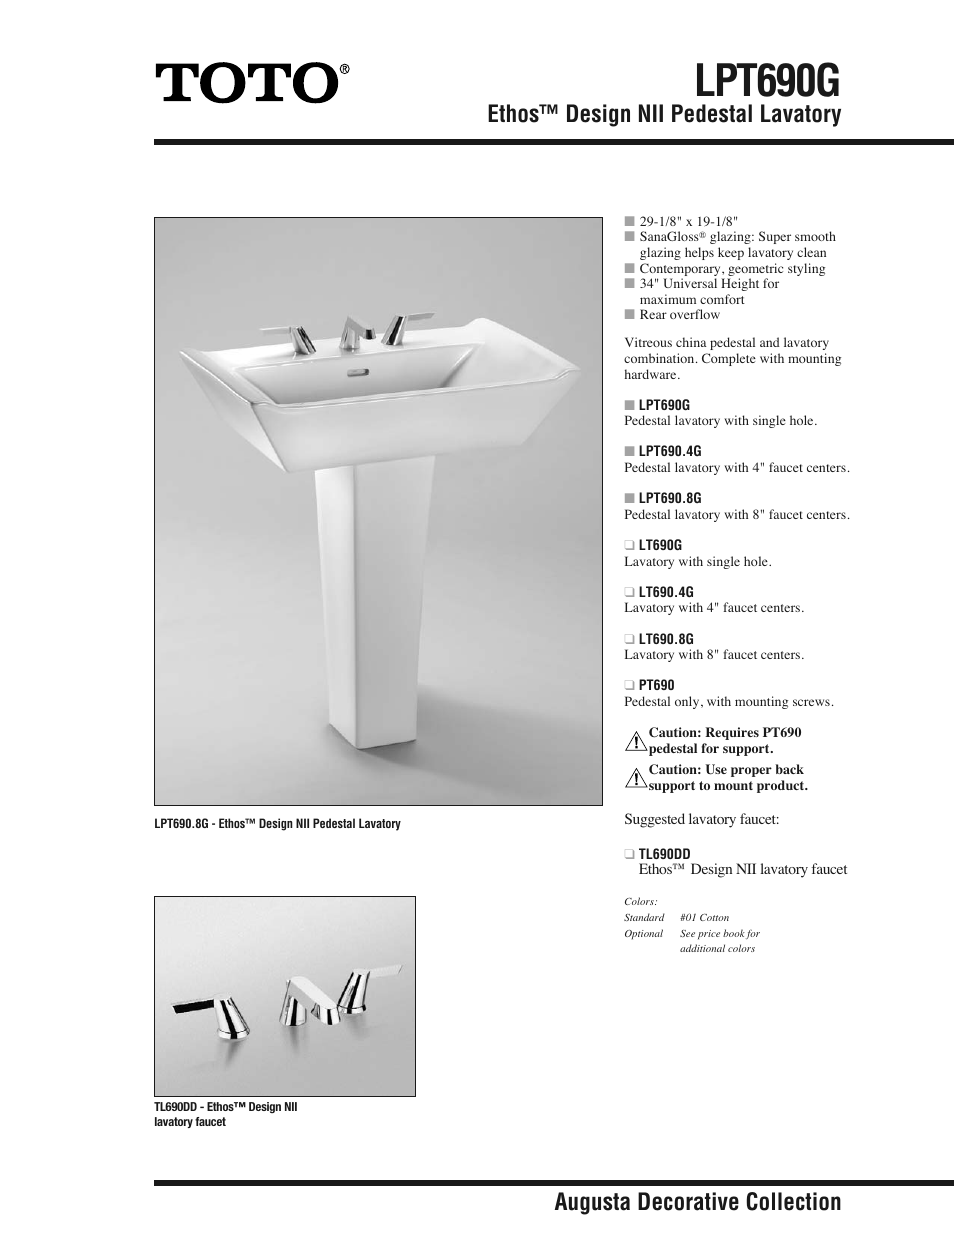 Factory Direct Hardware Toto LT6908G User Manual | 2 pages